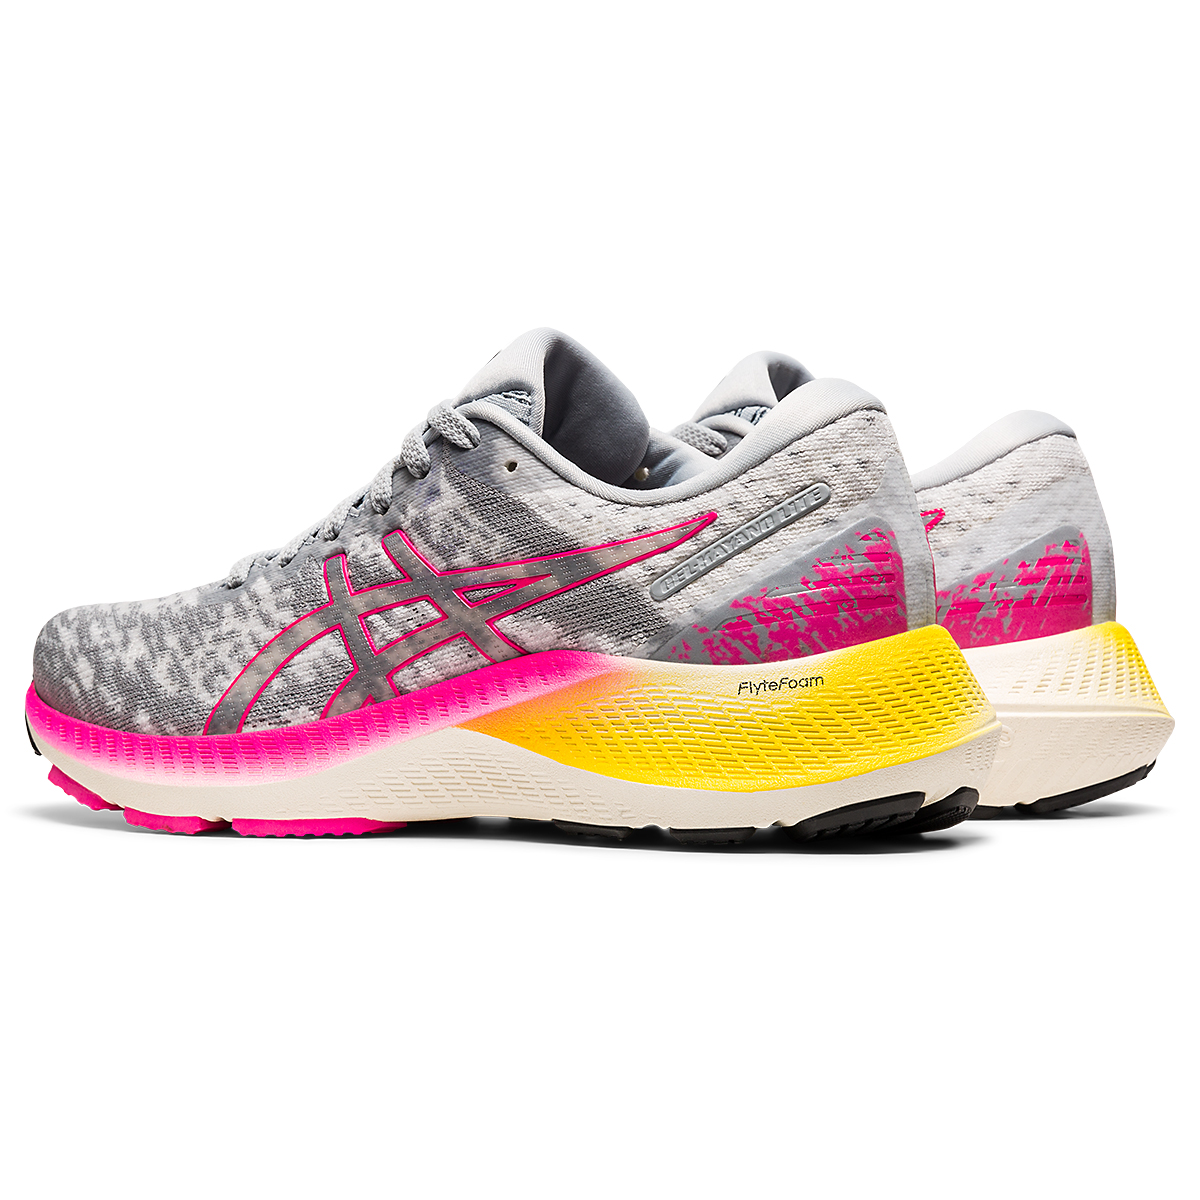 Women's Asics GEL-Kayano Lite Running Shoe - Color: Piedmont Grey/Sheet Rock - Size: 5 - Width: Regular, Piedmont Grey/Sheet Rock, large, image 4